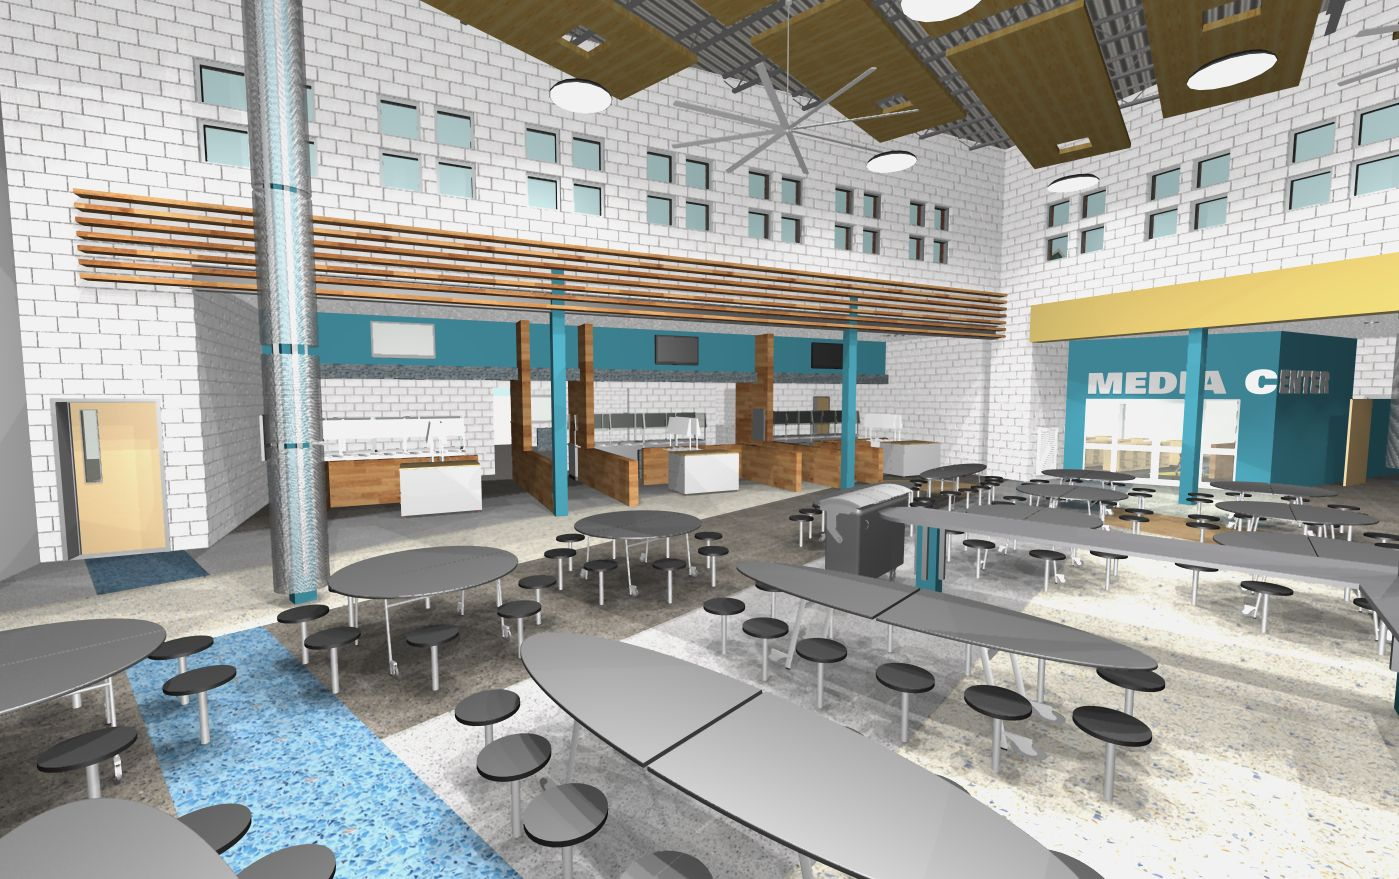 school cafeteria design - Google Search | Cafeteria design ...